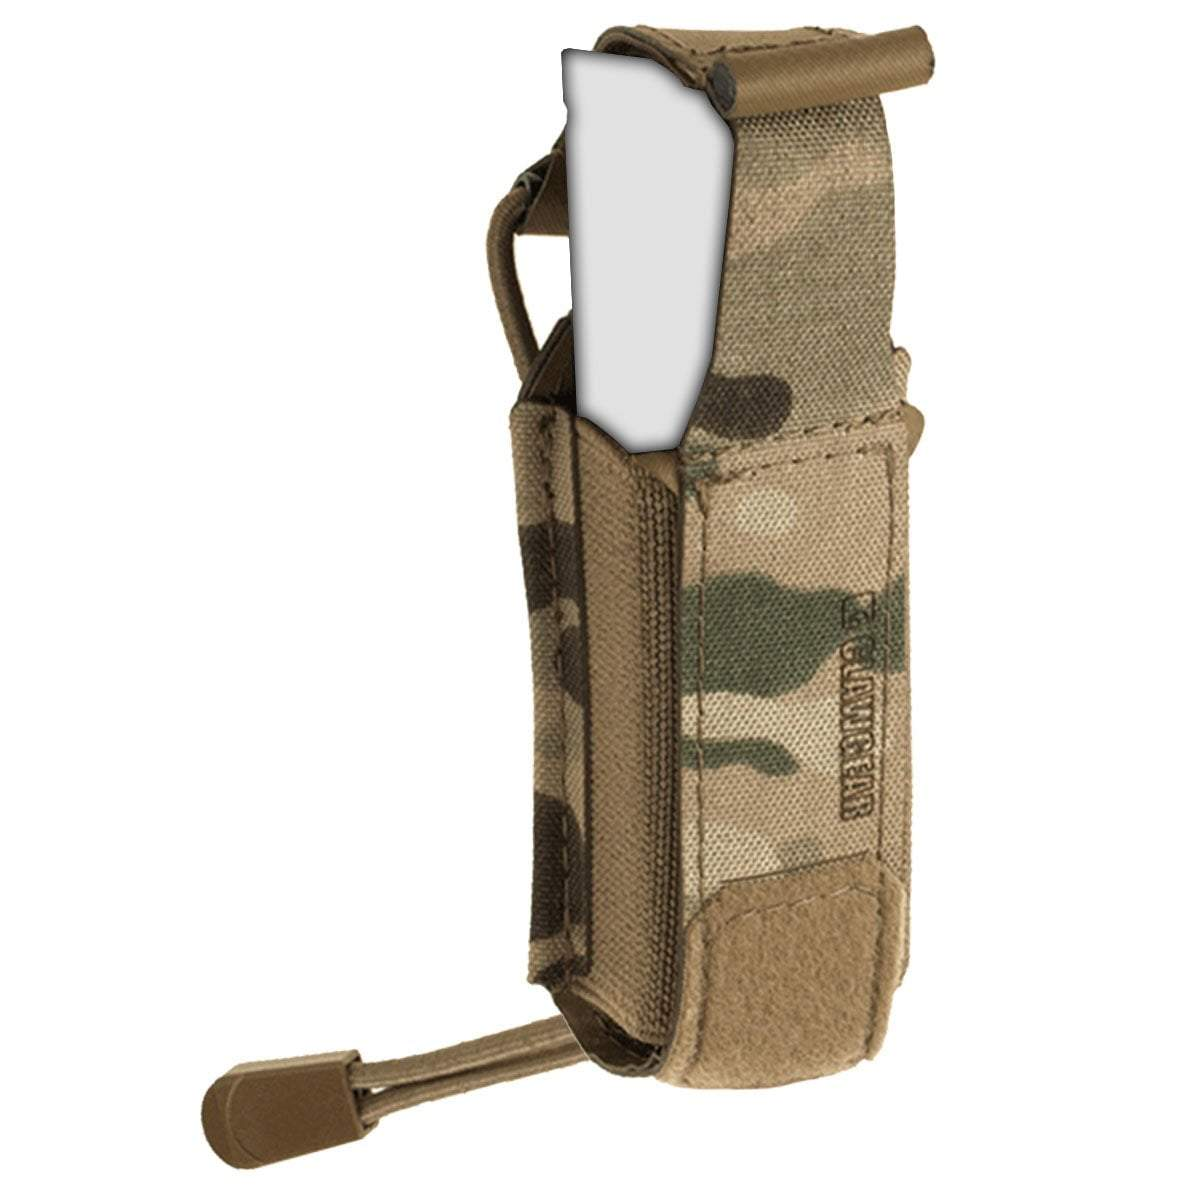 Clawgear 9mm Backward Flap Mag Pouch | UKMCPro